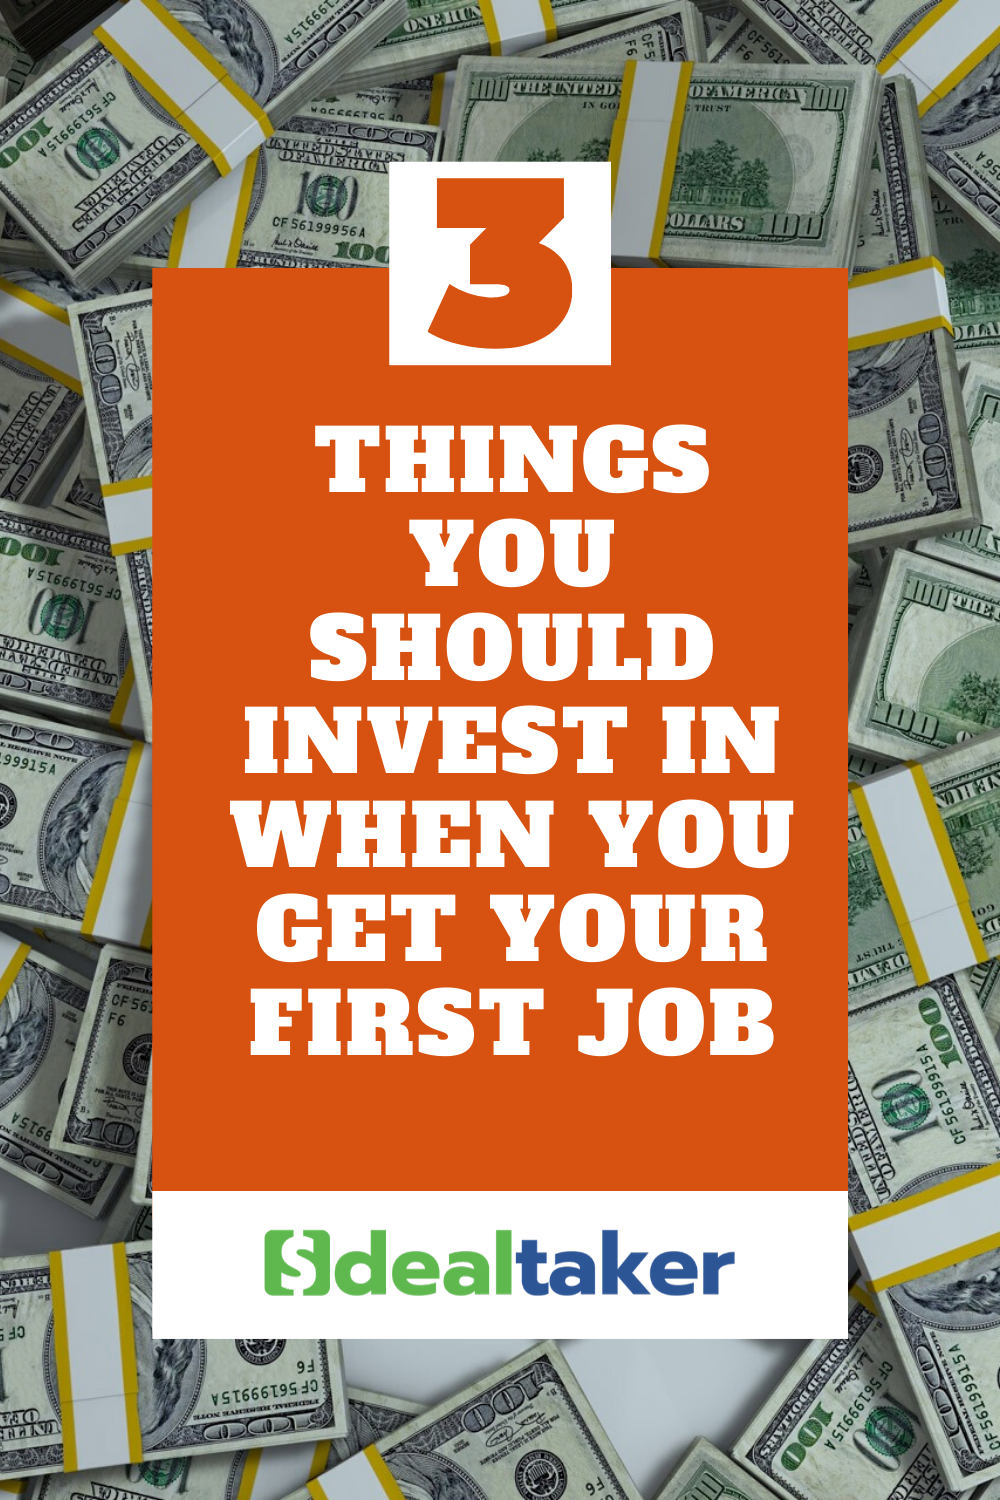 things you should invest in when you get your first job